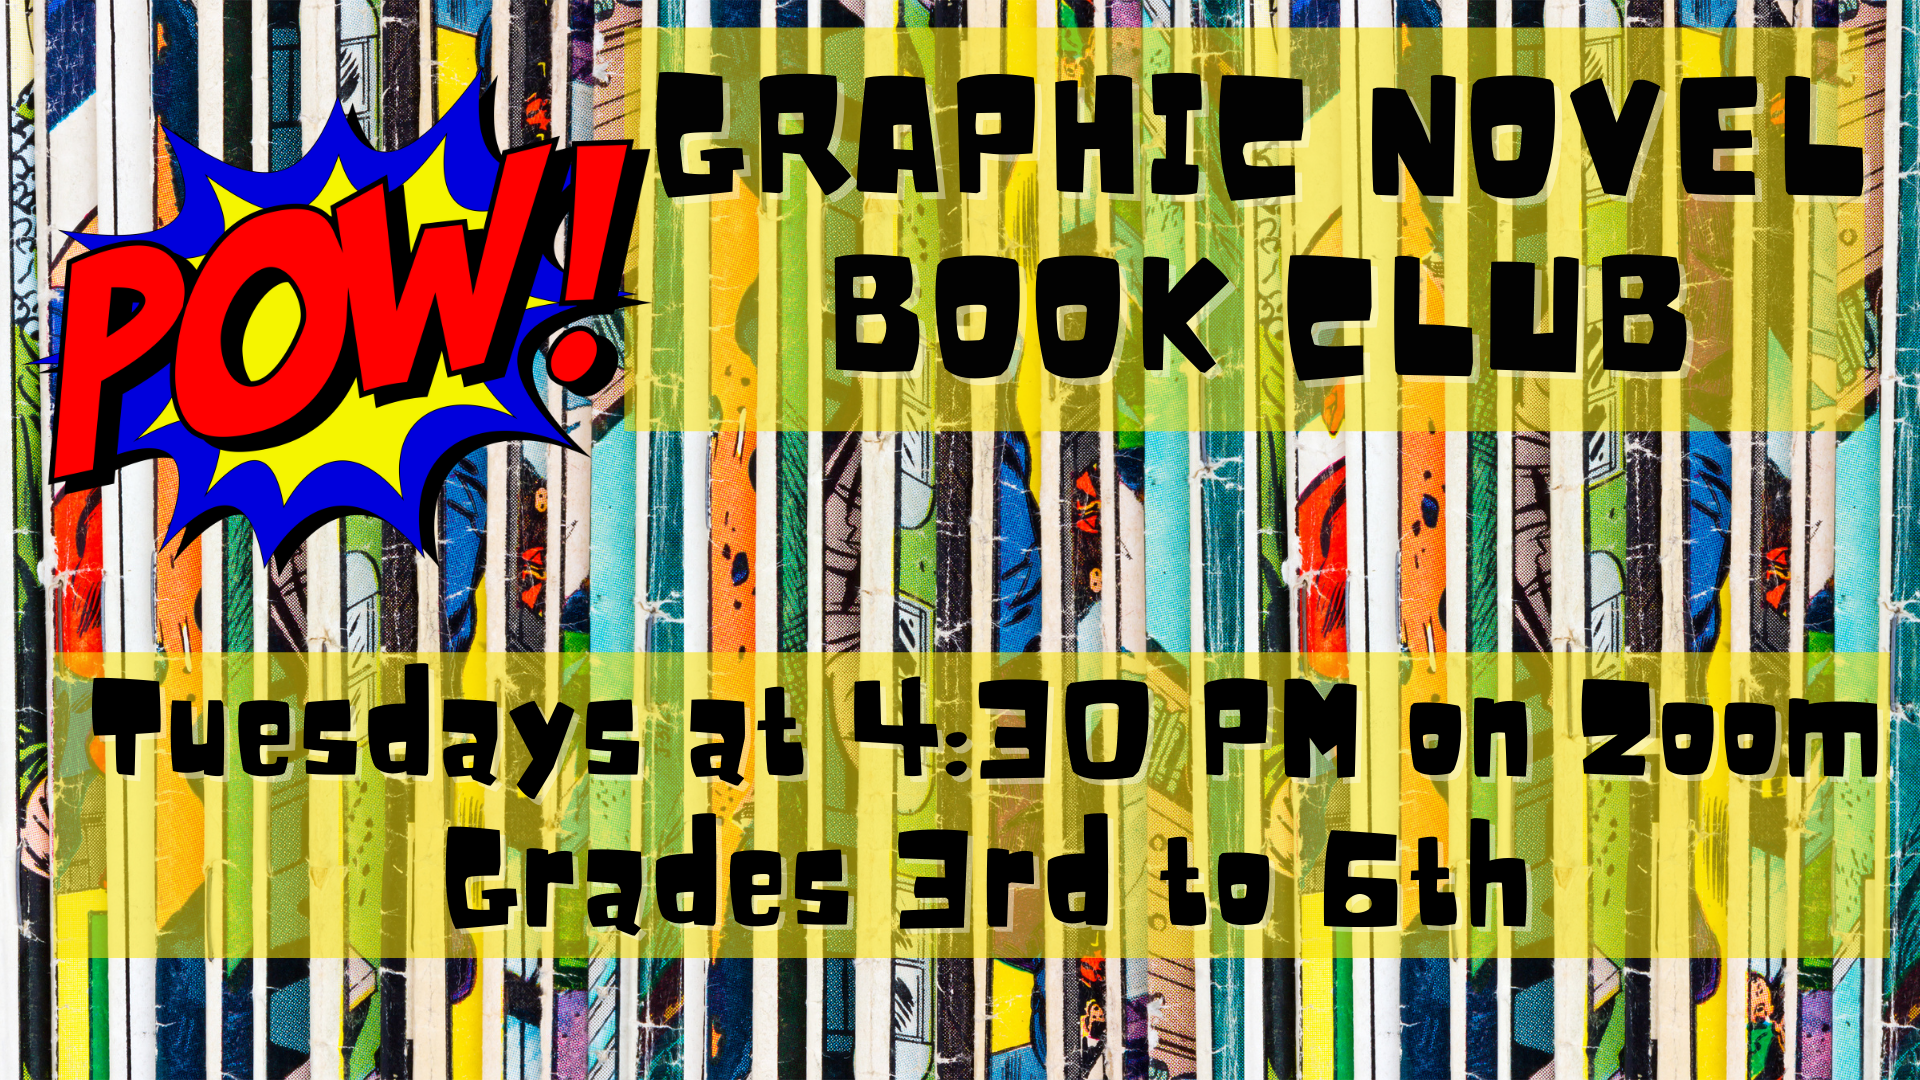 Graphic Novel book club